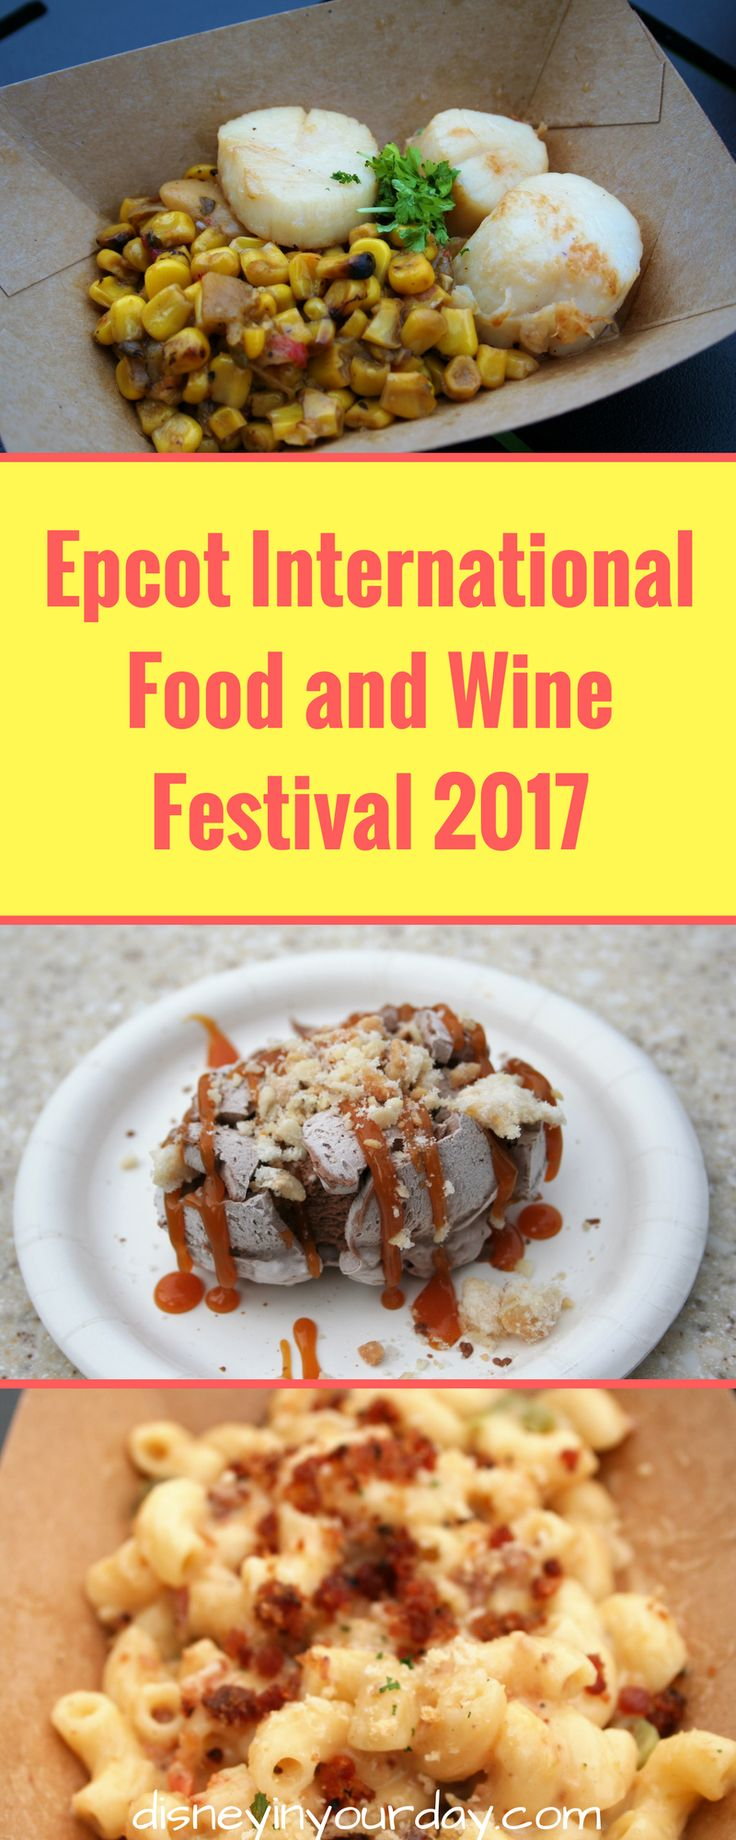 Epcot International Food and Wine Festival 2017 - Disney in your day